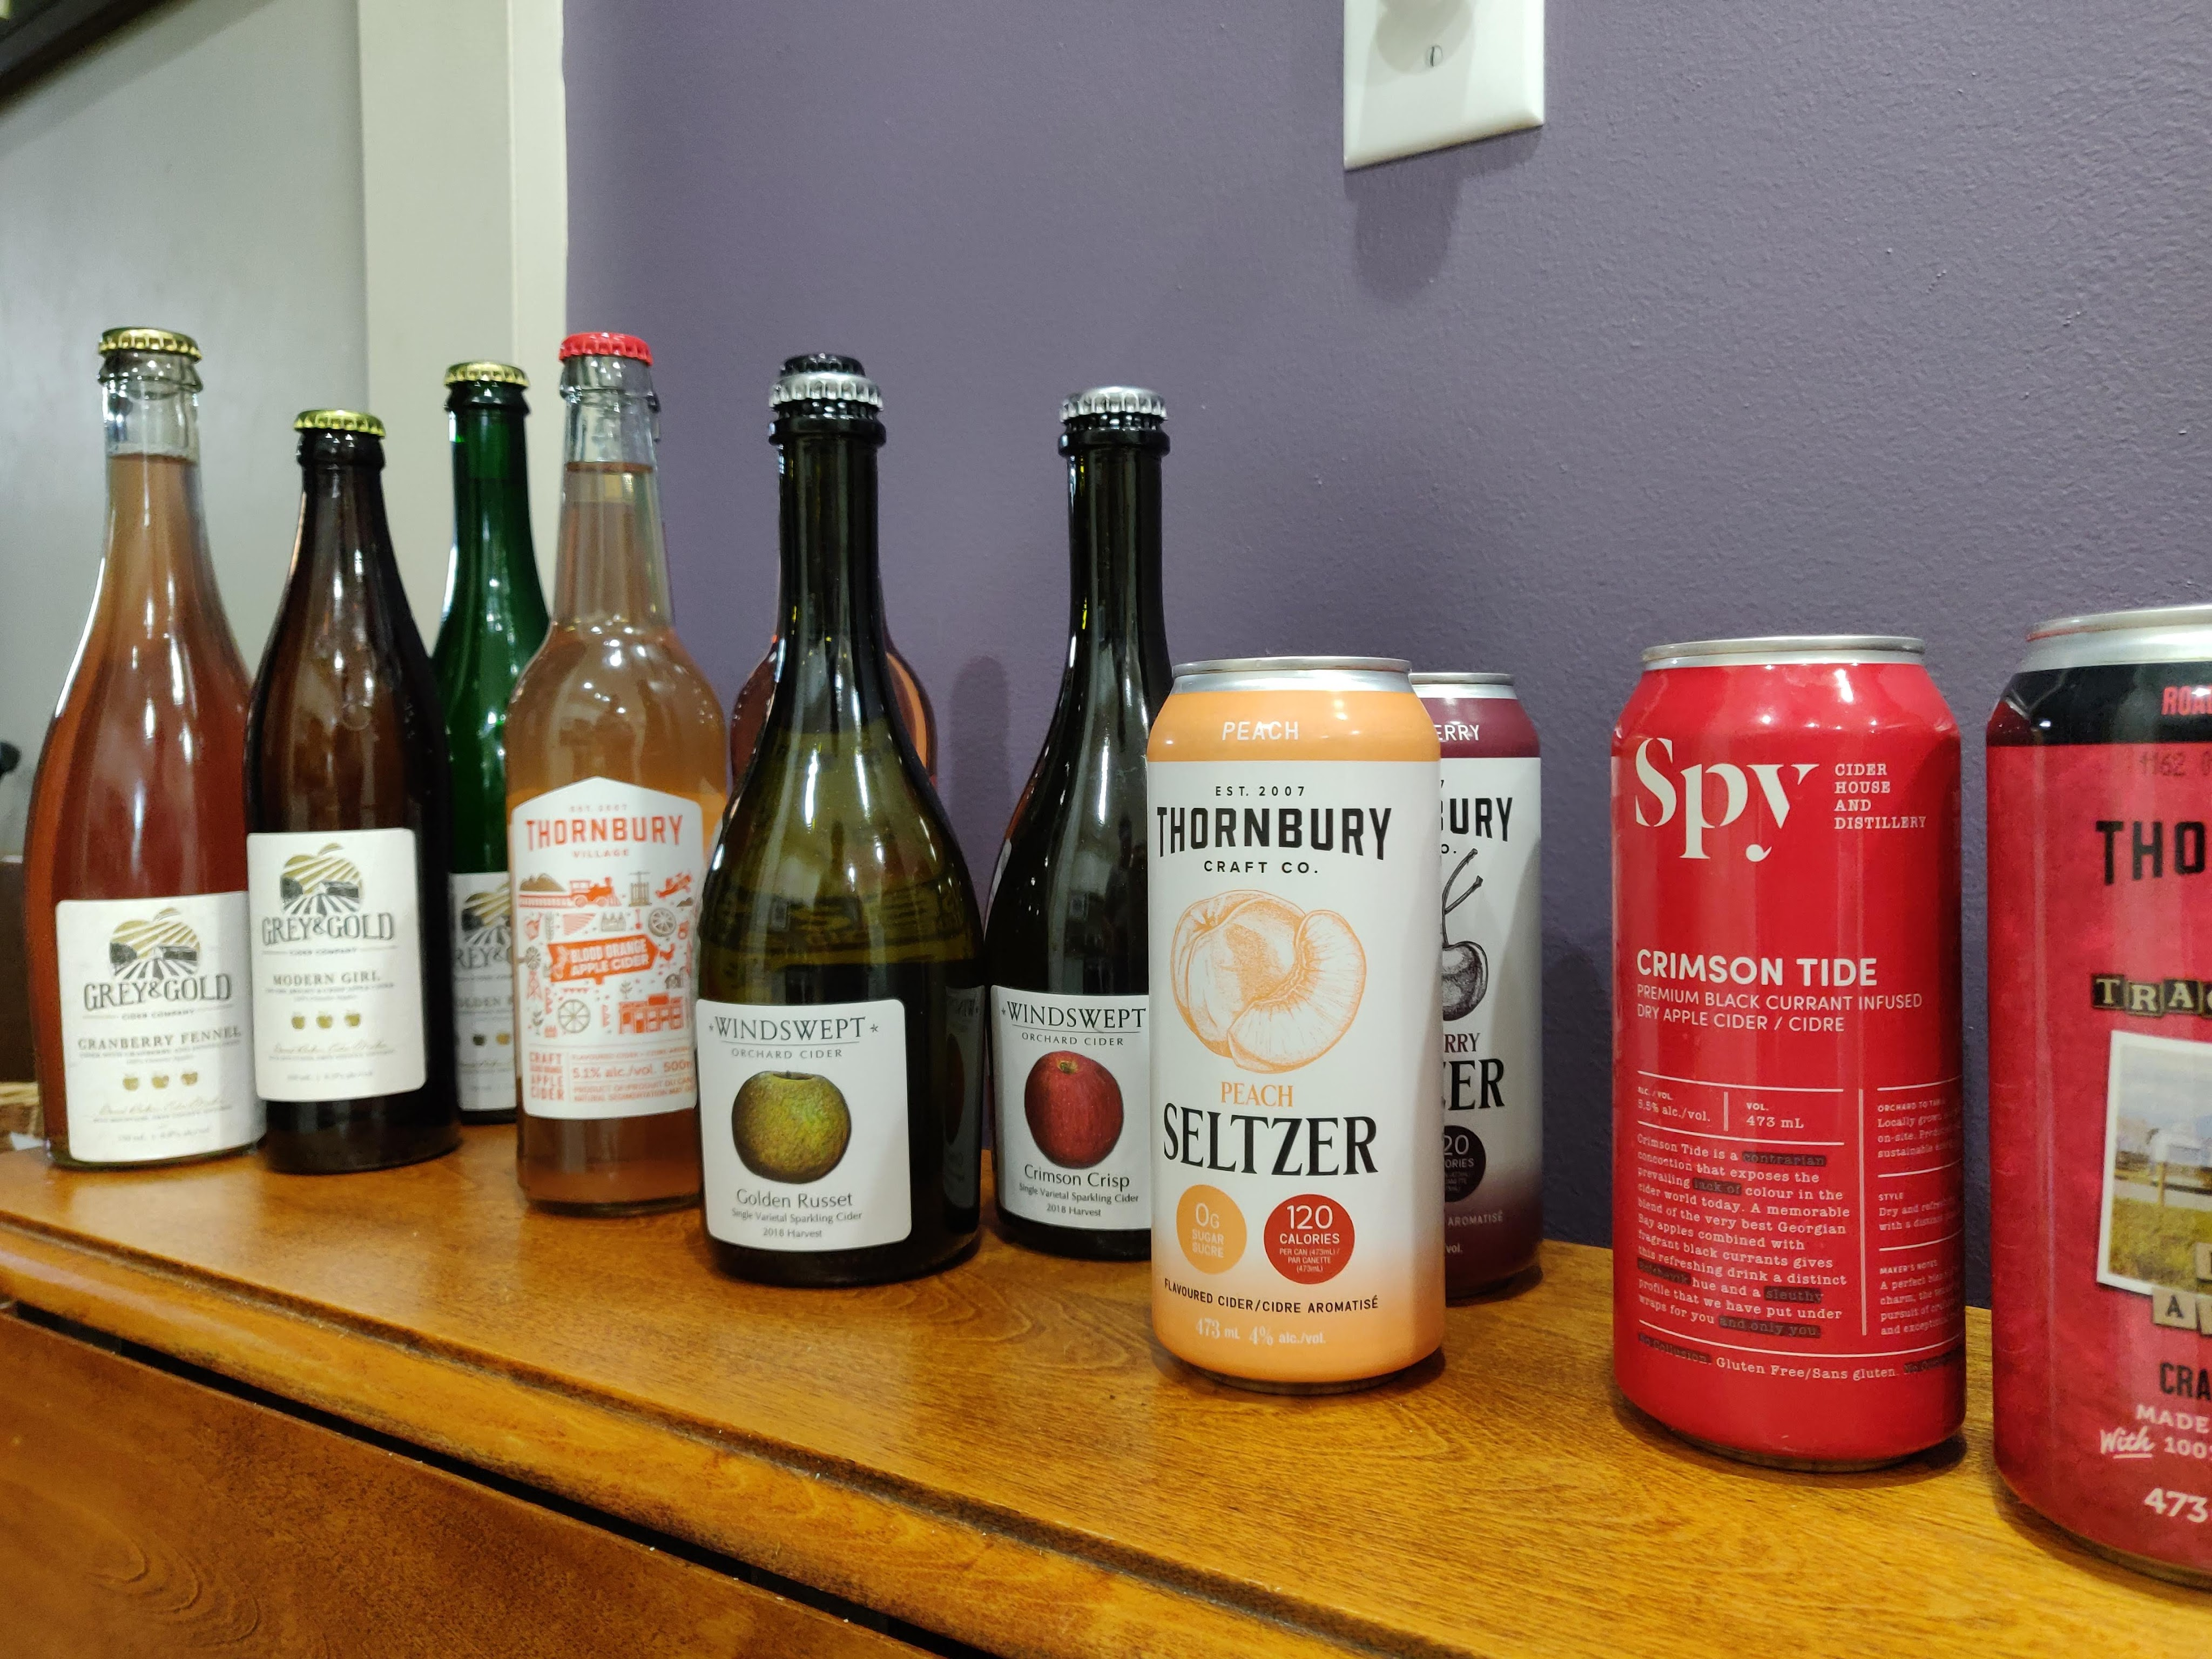 Several bottles and cans of various types of apple cider from Grey and Gold Cider, Thornbury Craft Cider, Windswept Cidery, and Spy Cider.